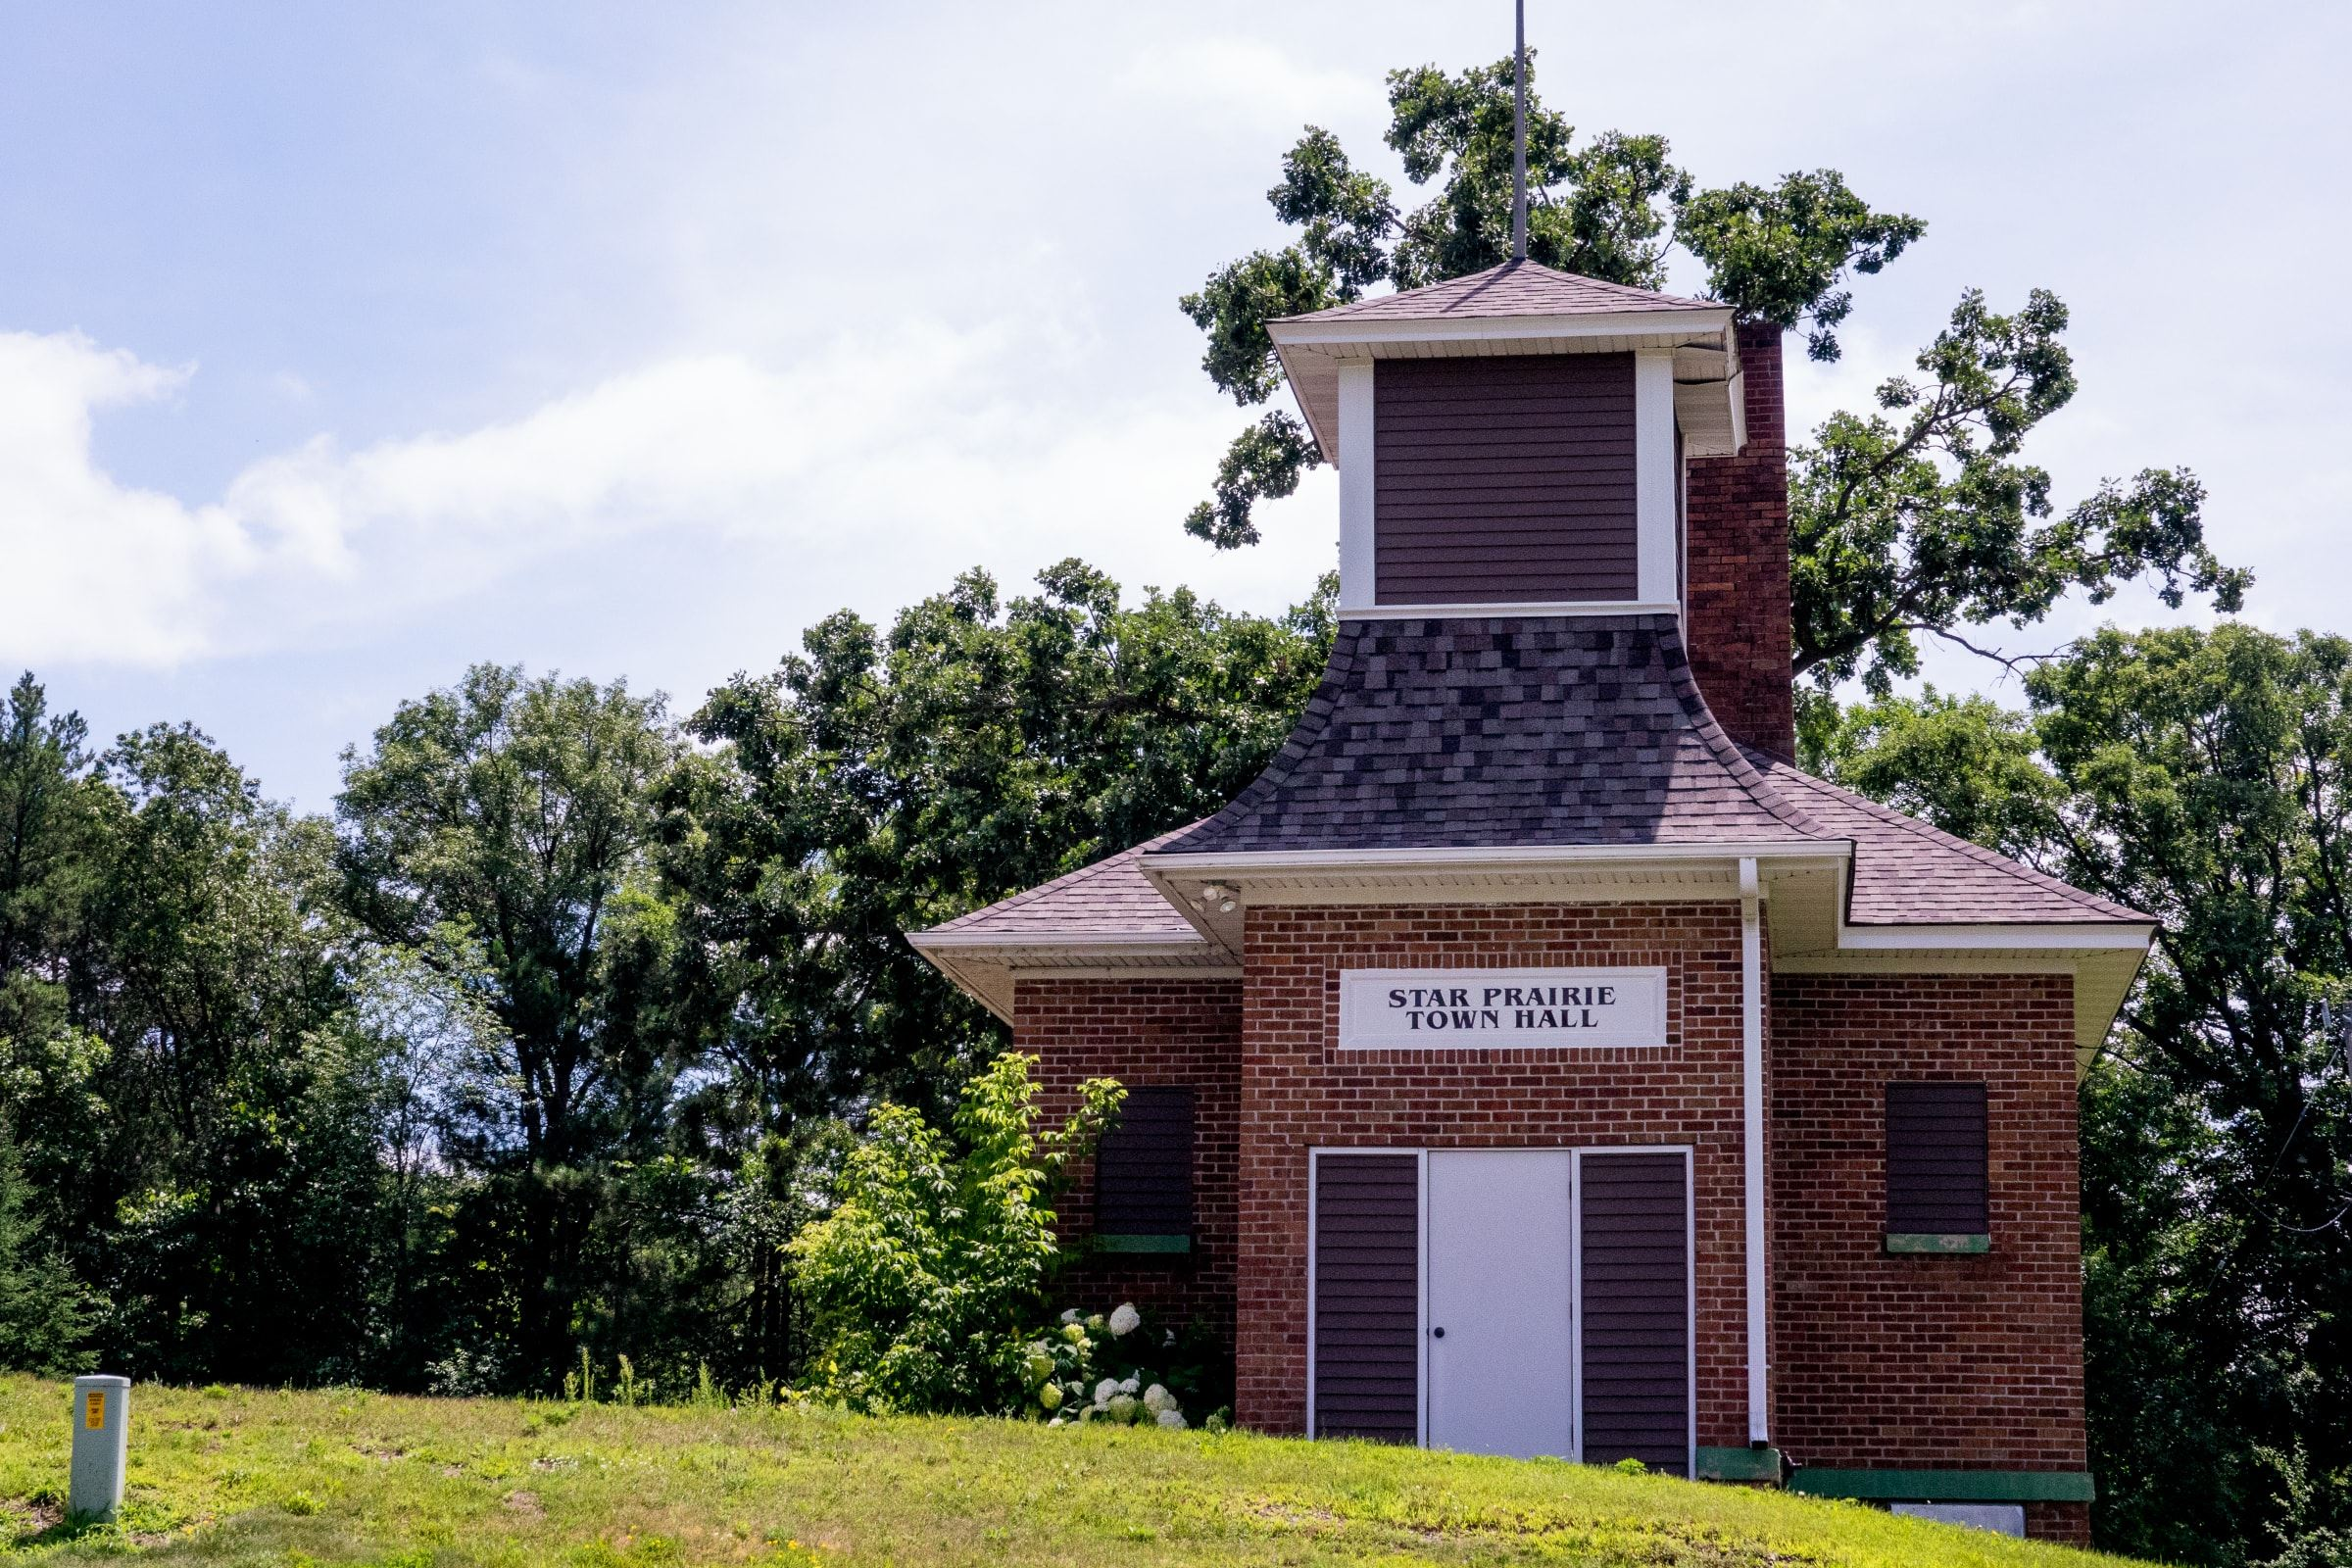 Star Prairie Town Hall